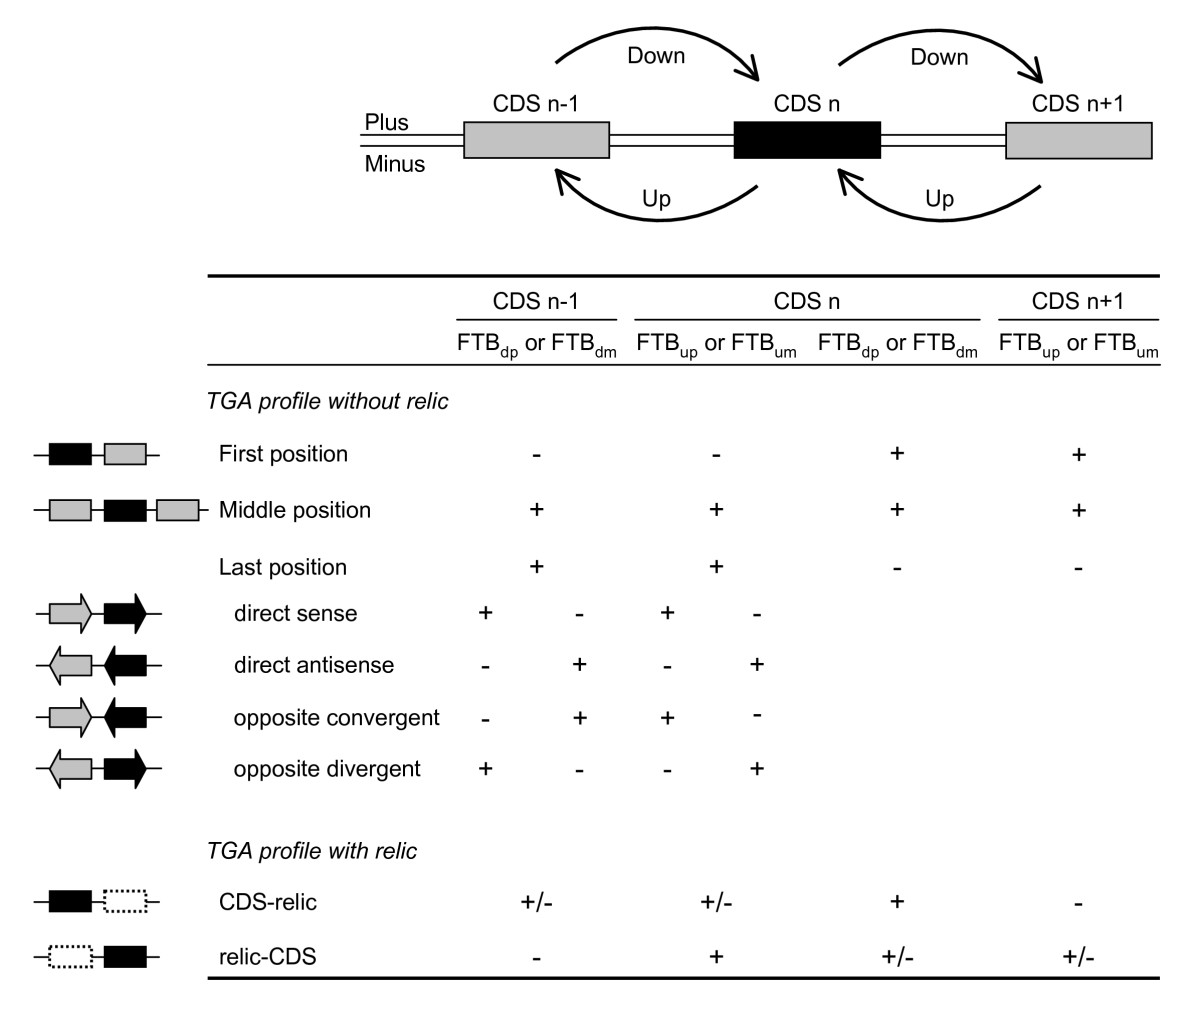 http://static-content.springer.com/image/art%3A10.1186%2F1471-2164-11-56/MediaObjects/12864_2009_Article_2650_Fig3_HTML.jpg